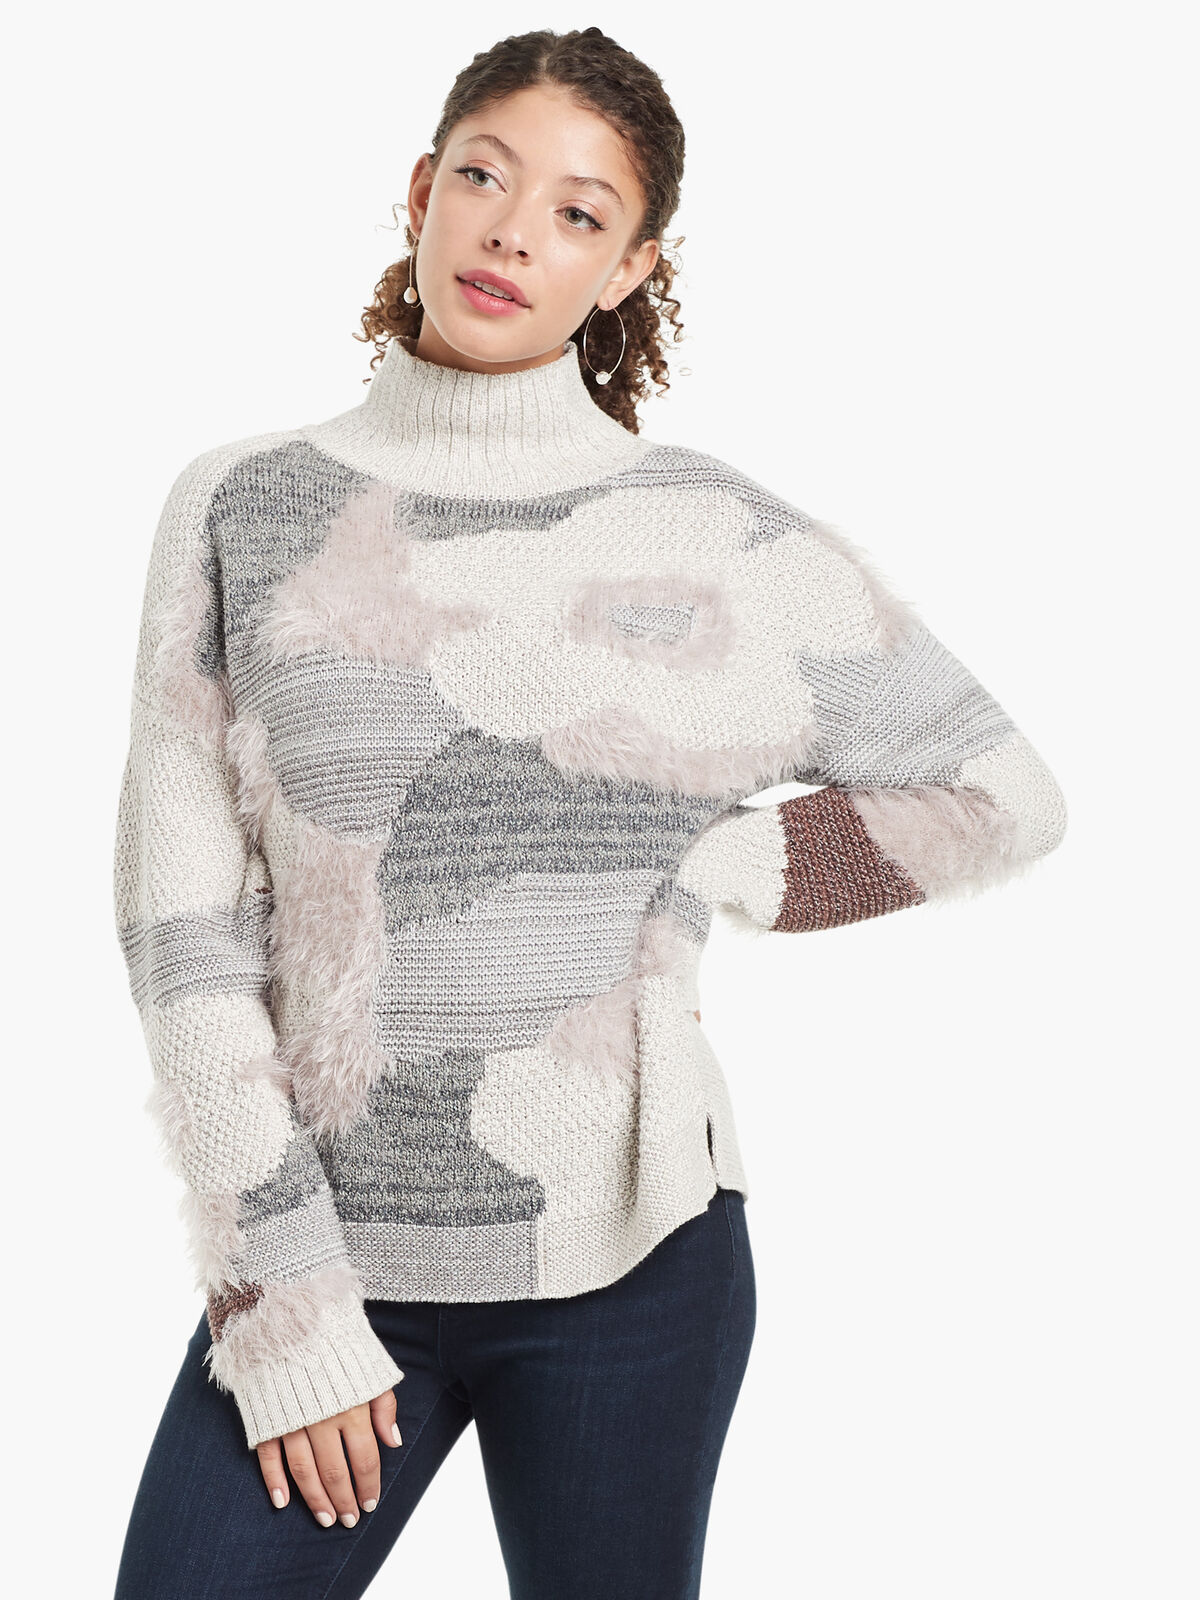 Fluffy Florals Sweater